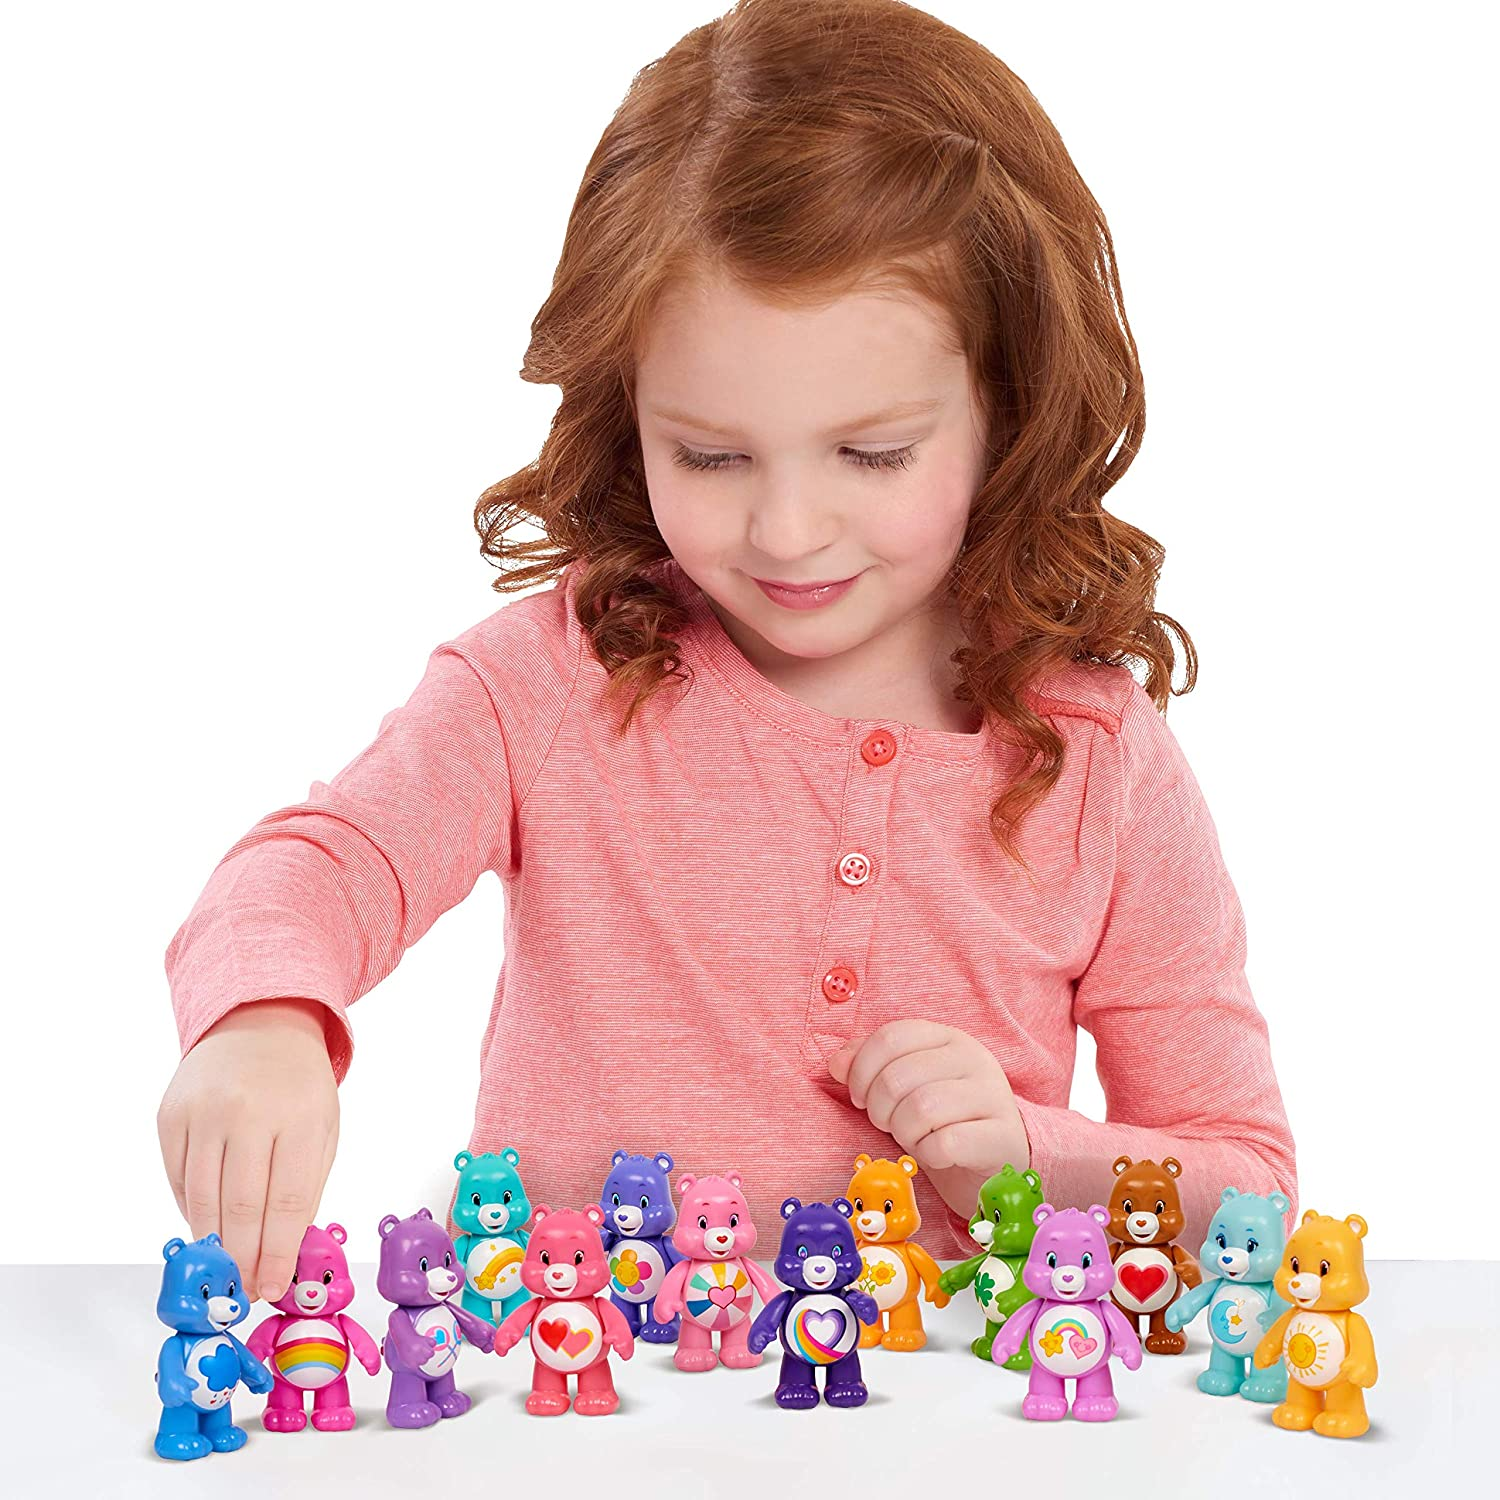 2020 Care Bears Mini 3 inch Figures articulated arms 5 pack *NEW* Just Play Toys